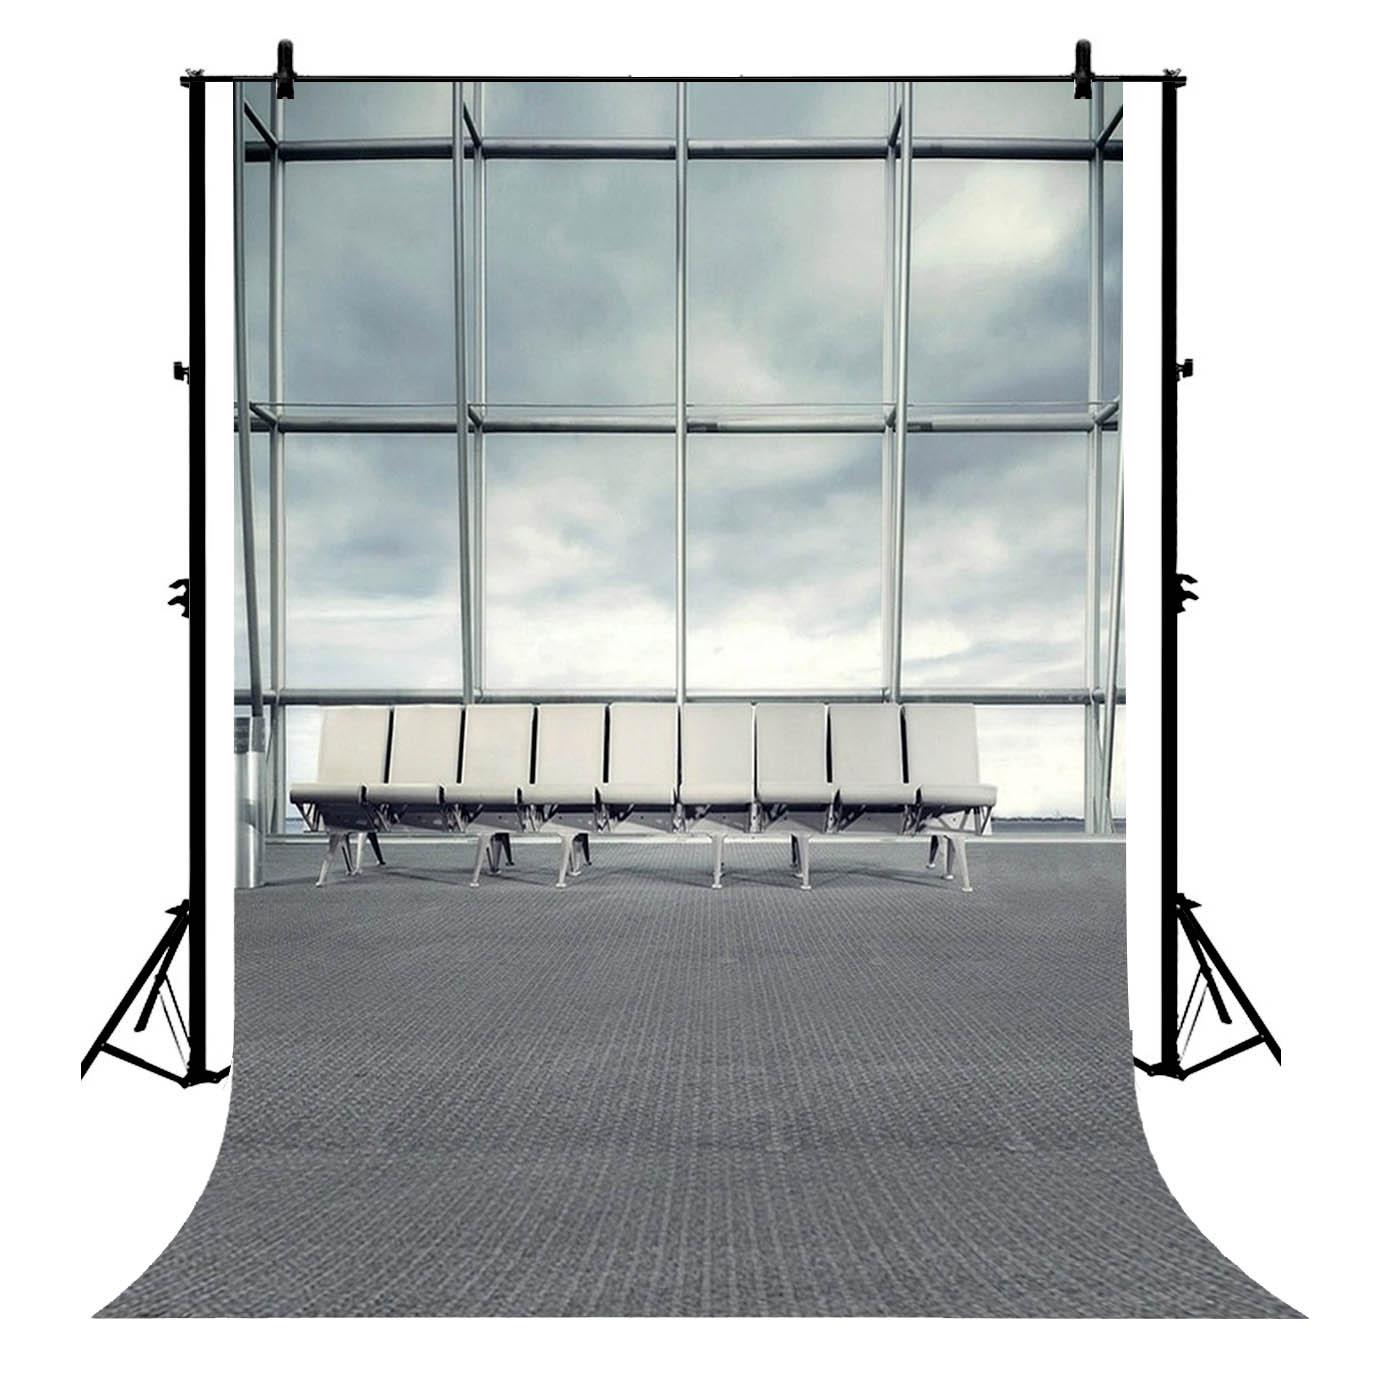 GCKG 7x5ft Artistic Wedding Airport Window Lounge Chairs Blurry Floor Adults Child Scene Indoor Girl Polyester Photography Backdrop Photography Props Studio Photo Booth Props - image 4 of 4